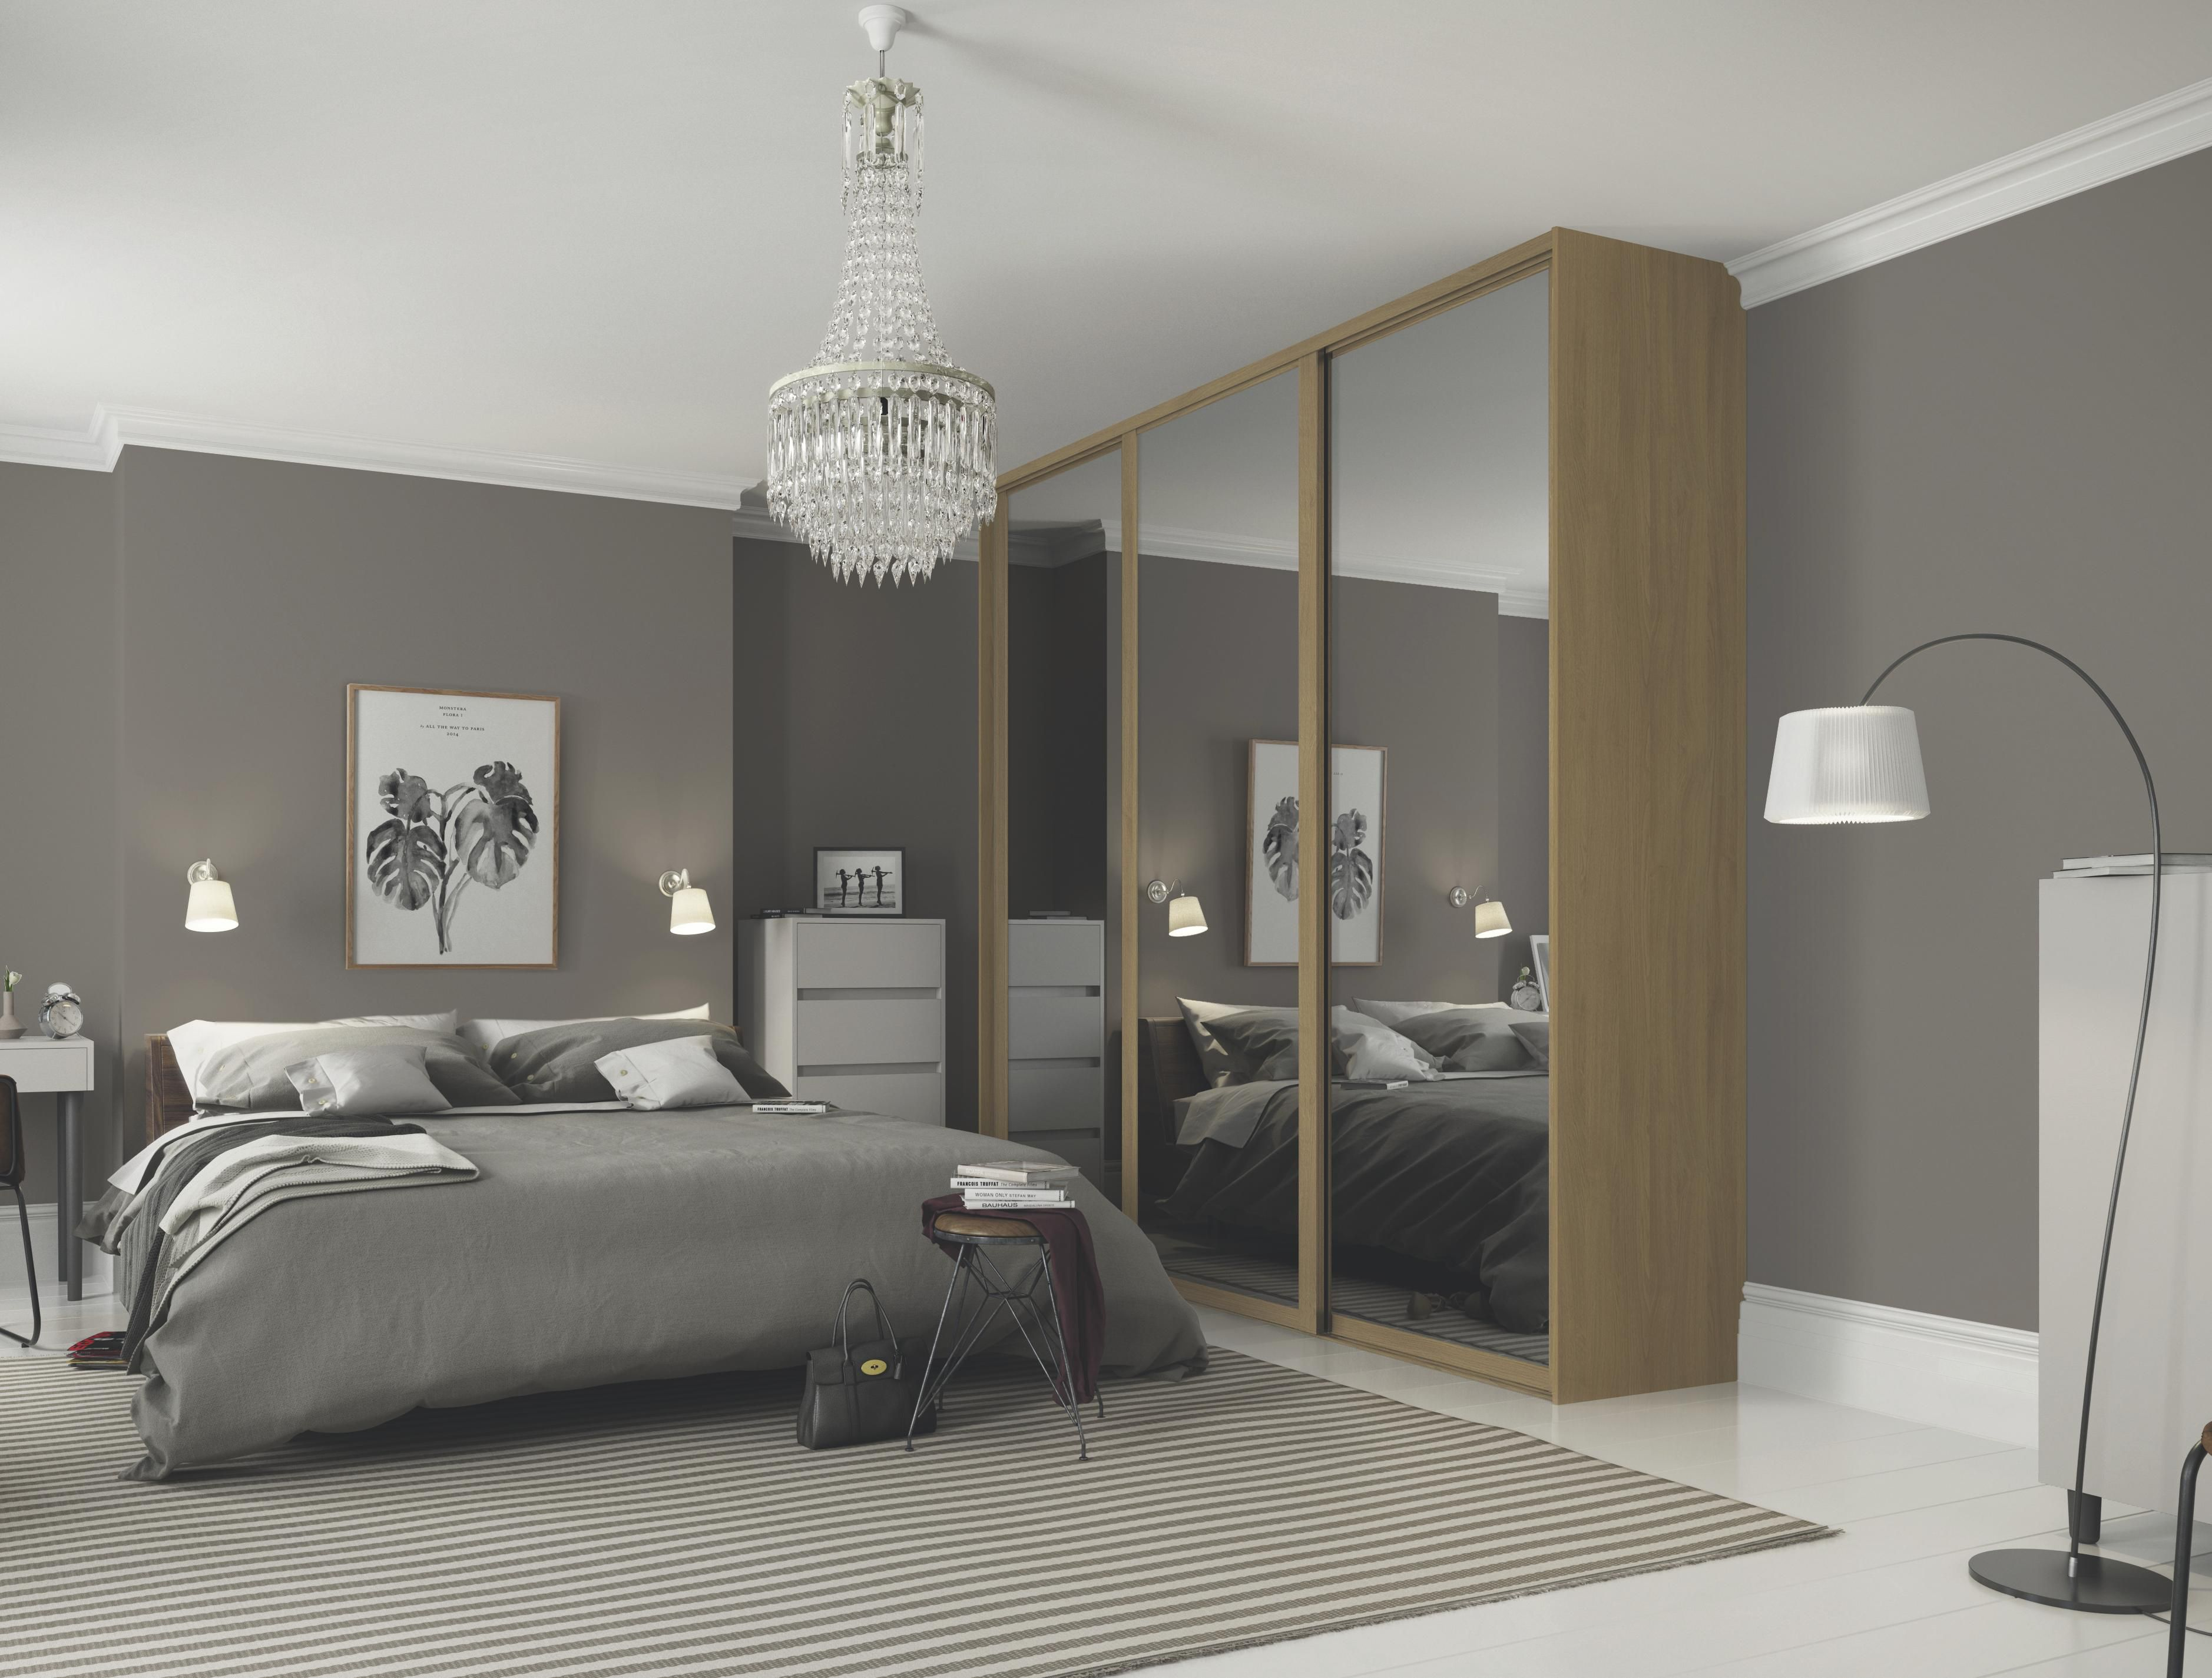 Sliding door wardrobes with mirror sliding door kits SGCHVJL